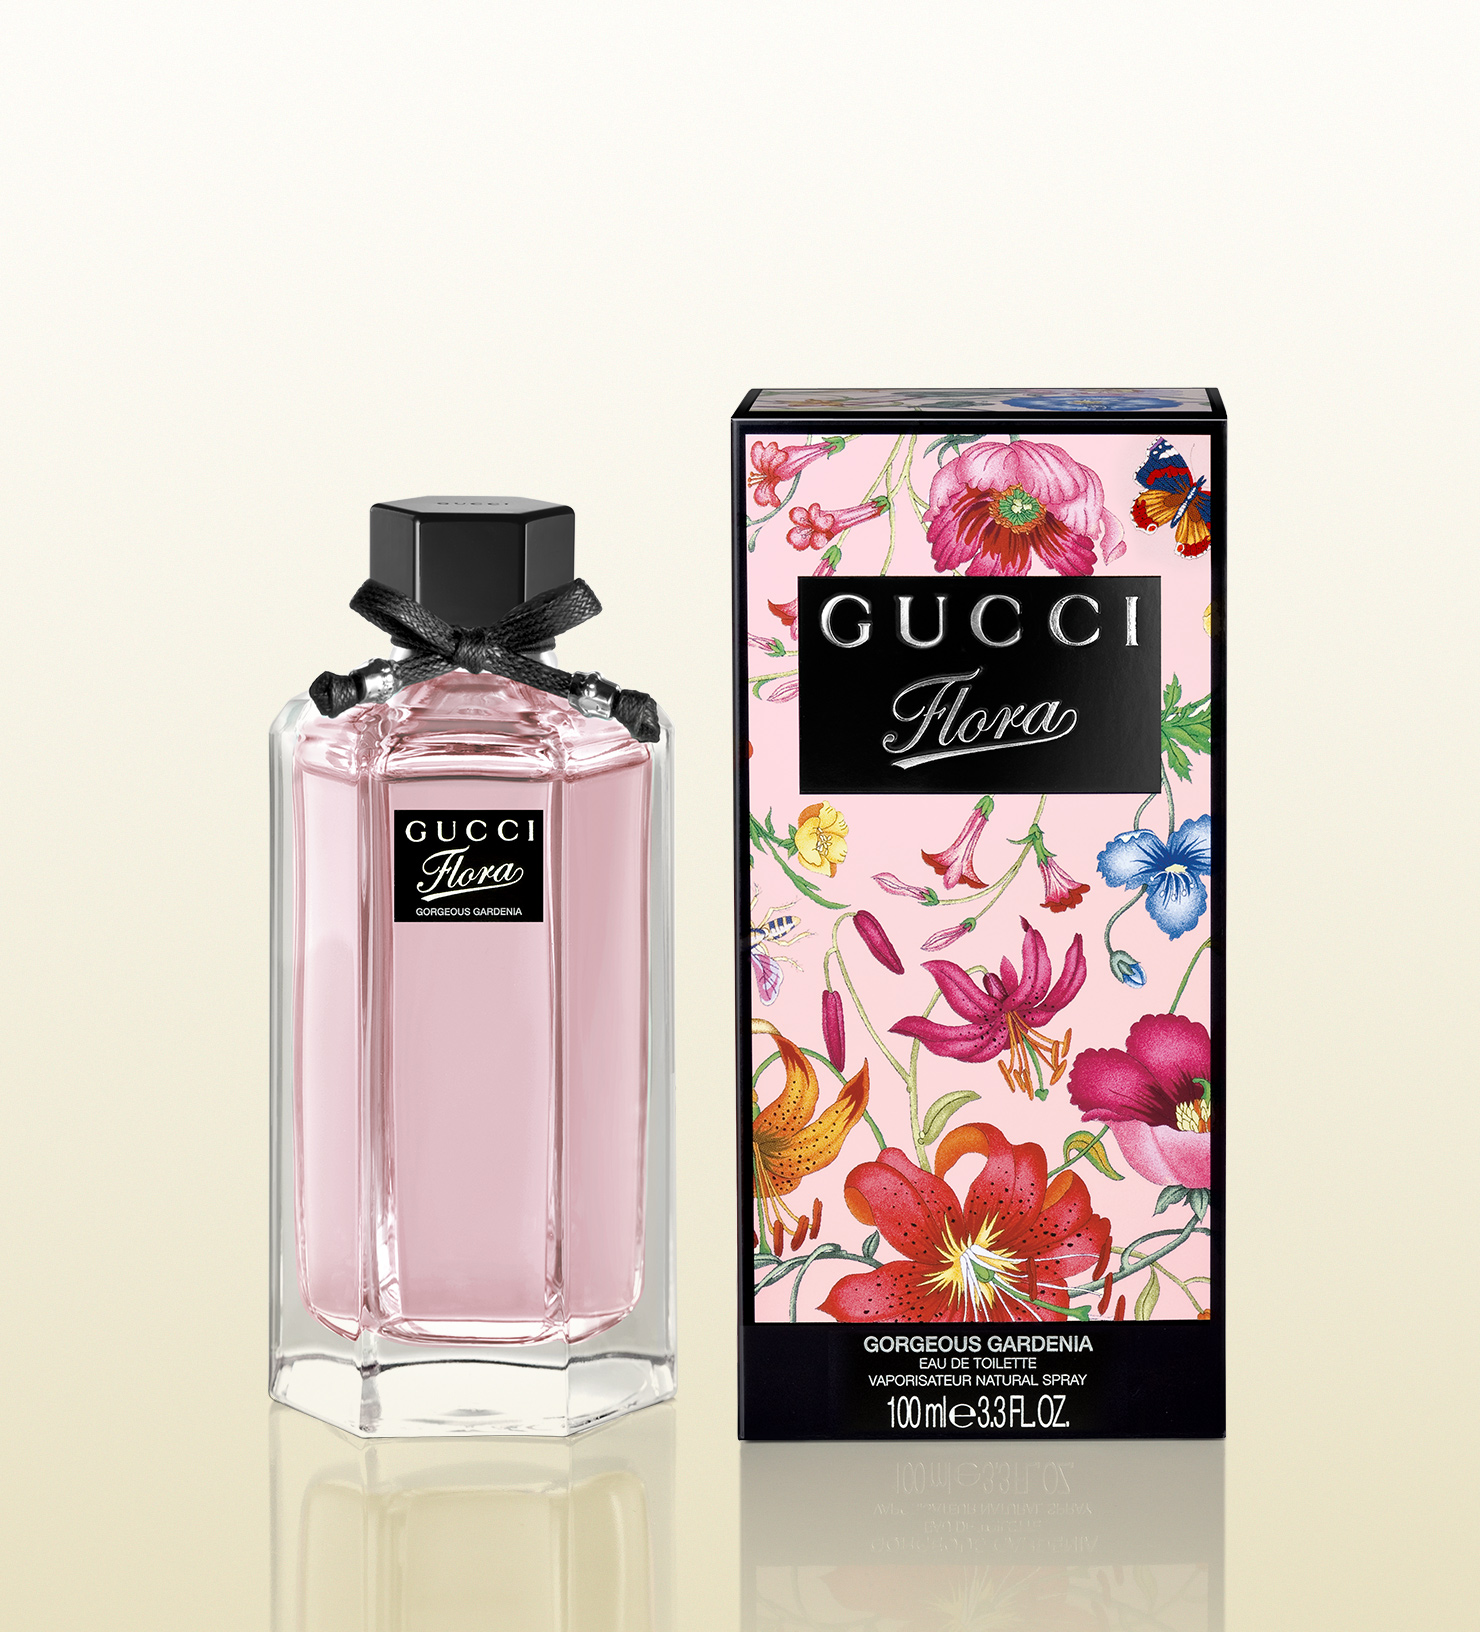 9411c71397b Flora by Gucci Gorgeous Gardenia Gucci בושם - הינו ניחוח 2012 לנשים